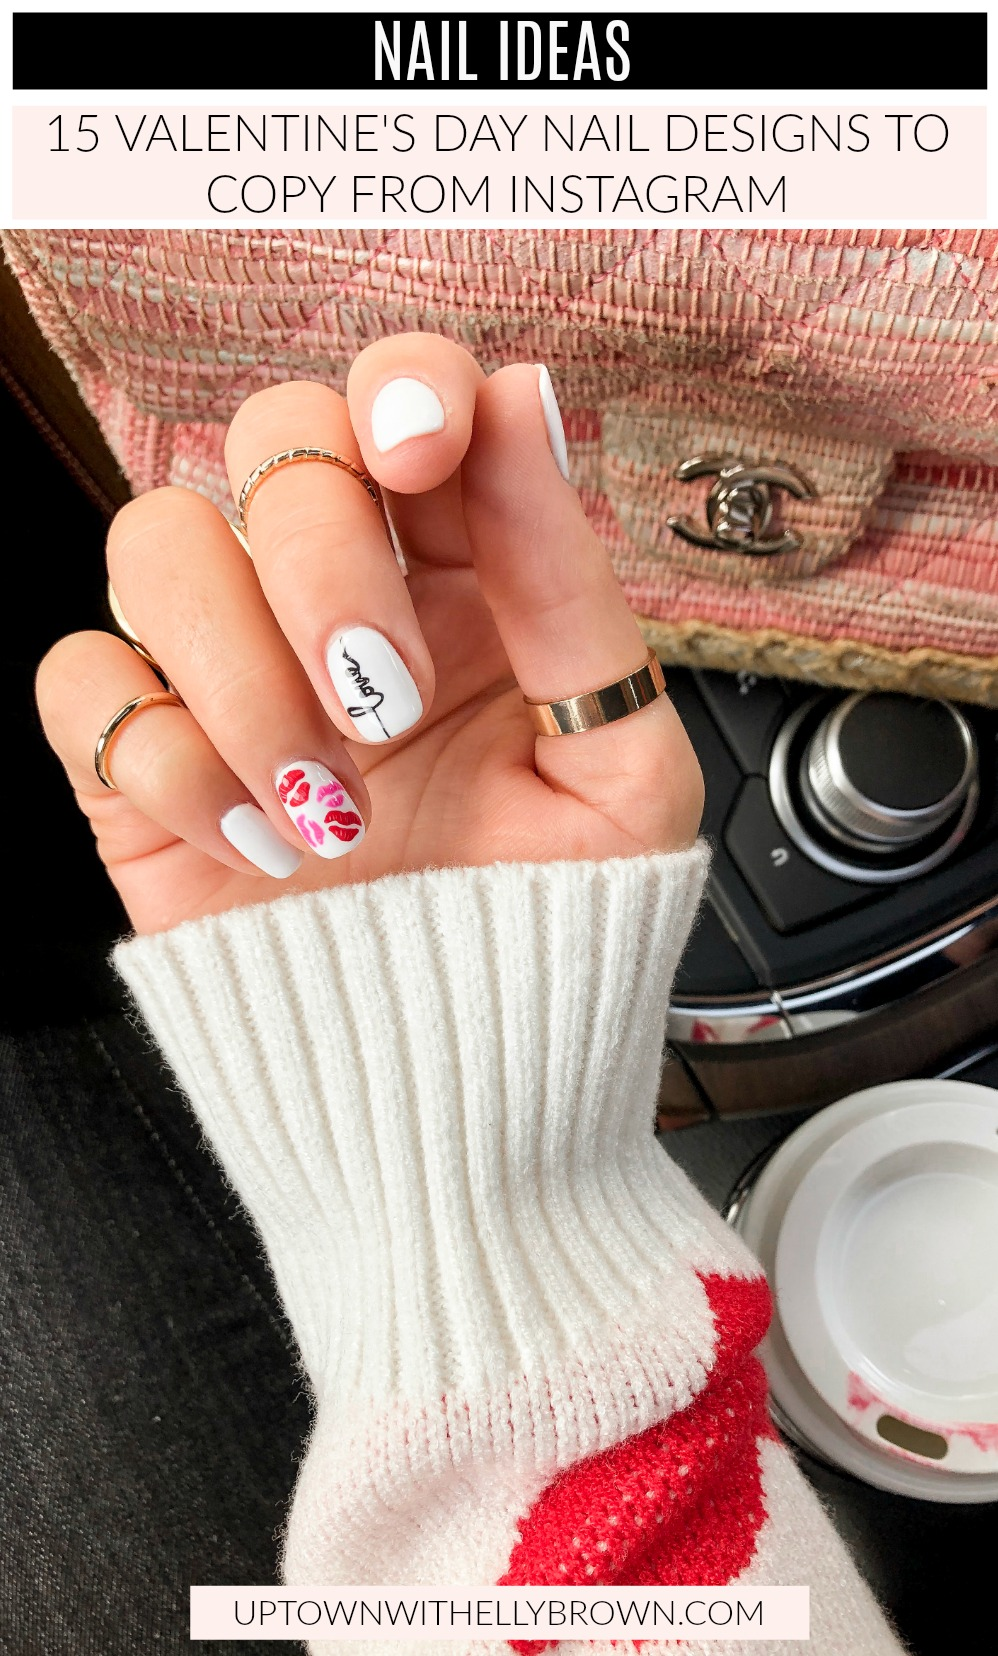 Looking for Nail Ideas for Valentine's Day? Houston blogger Uptown with Elly Brown shares 15 Valentine's Day Nail Designs from Instagram to copy!